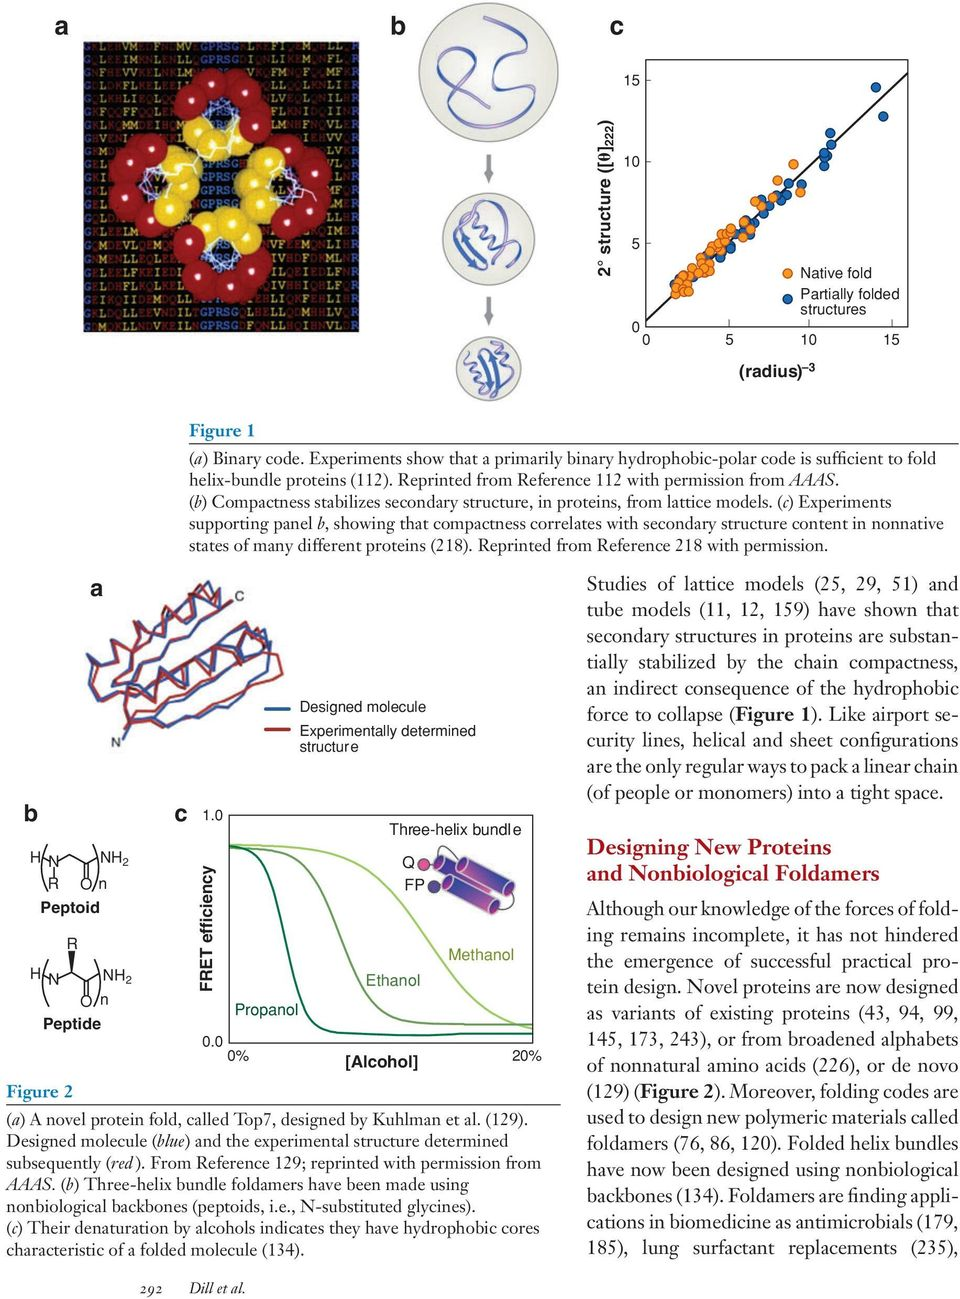 (b) Compactness stabilizes secondary structure, in proteins, from lattice models.